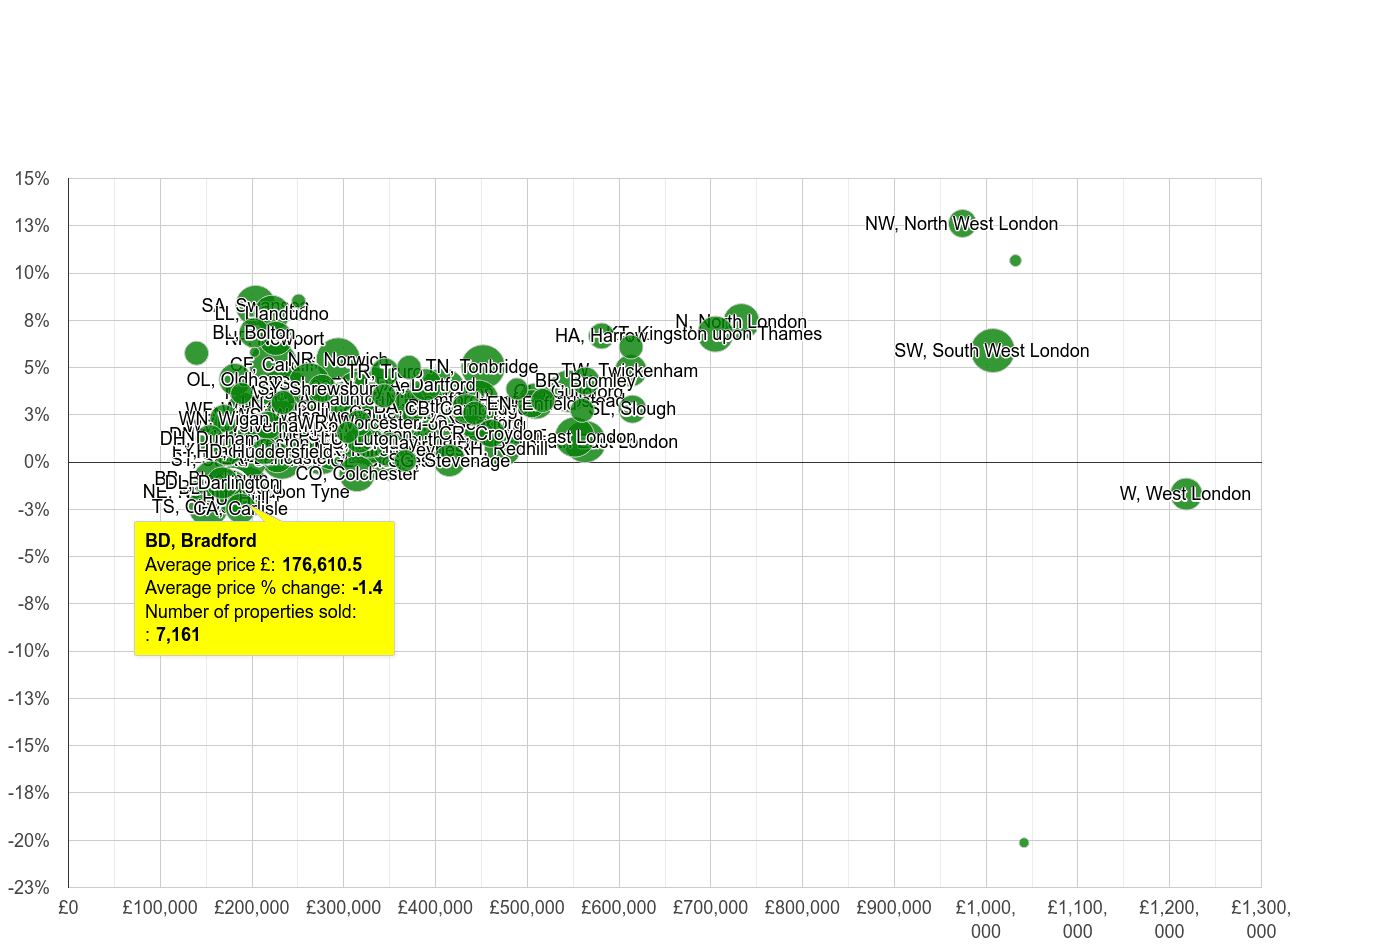 Bradford house prices compared to other areas